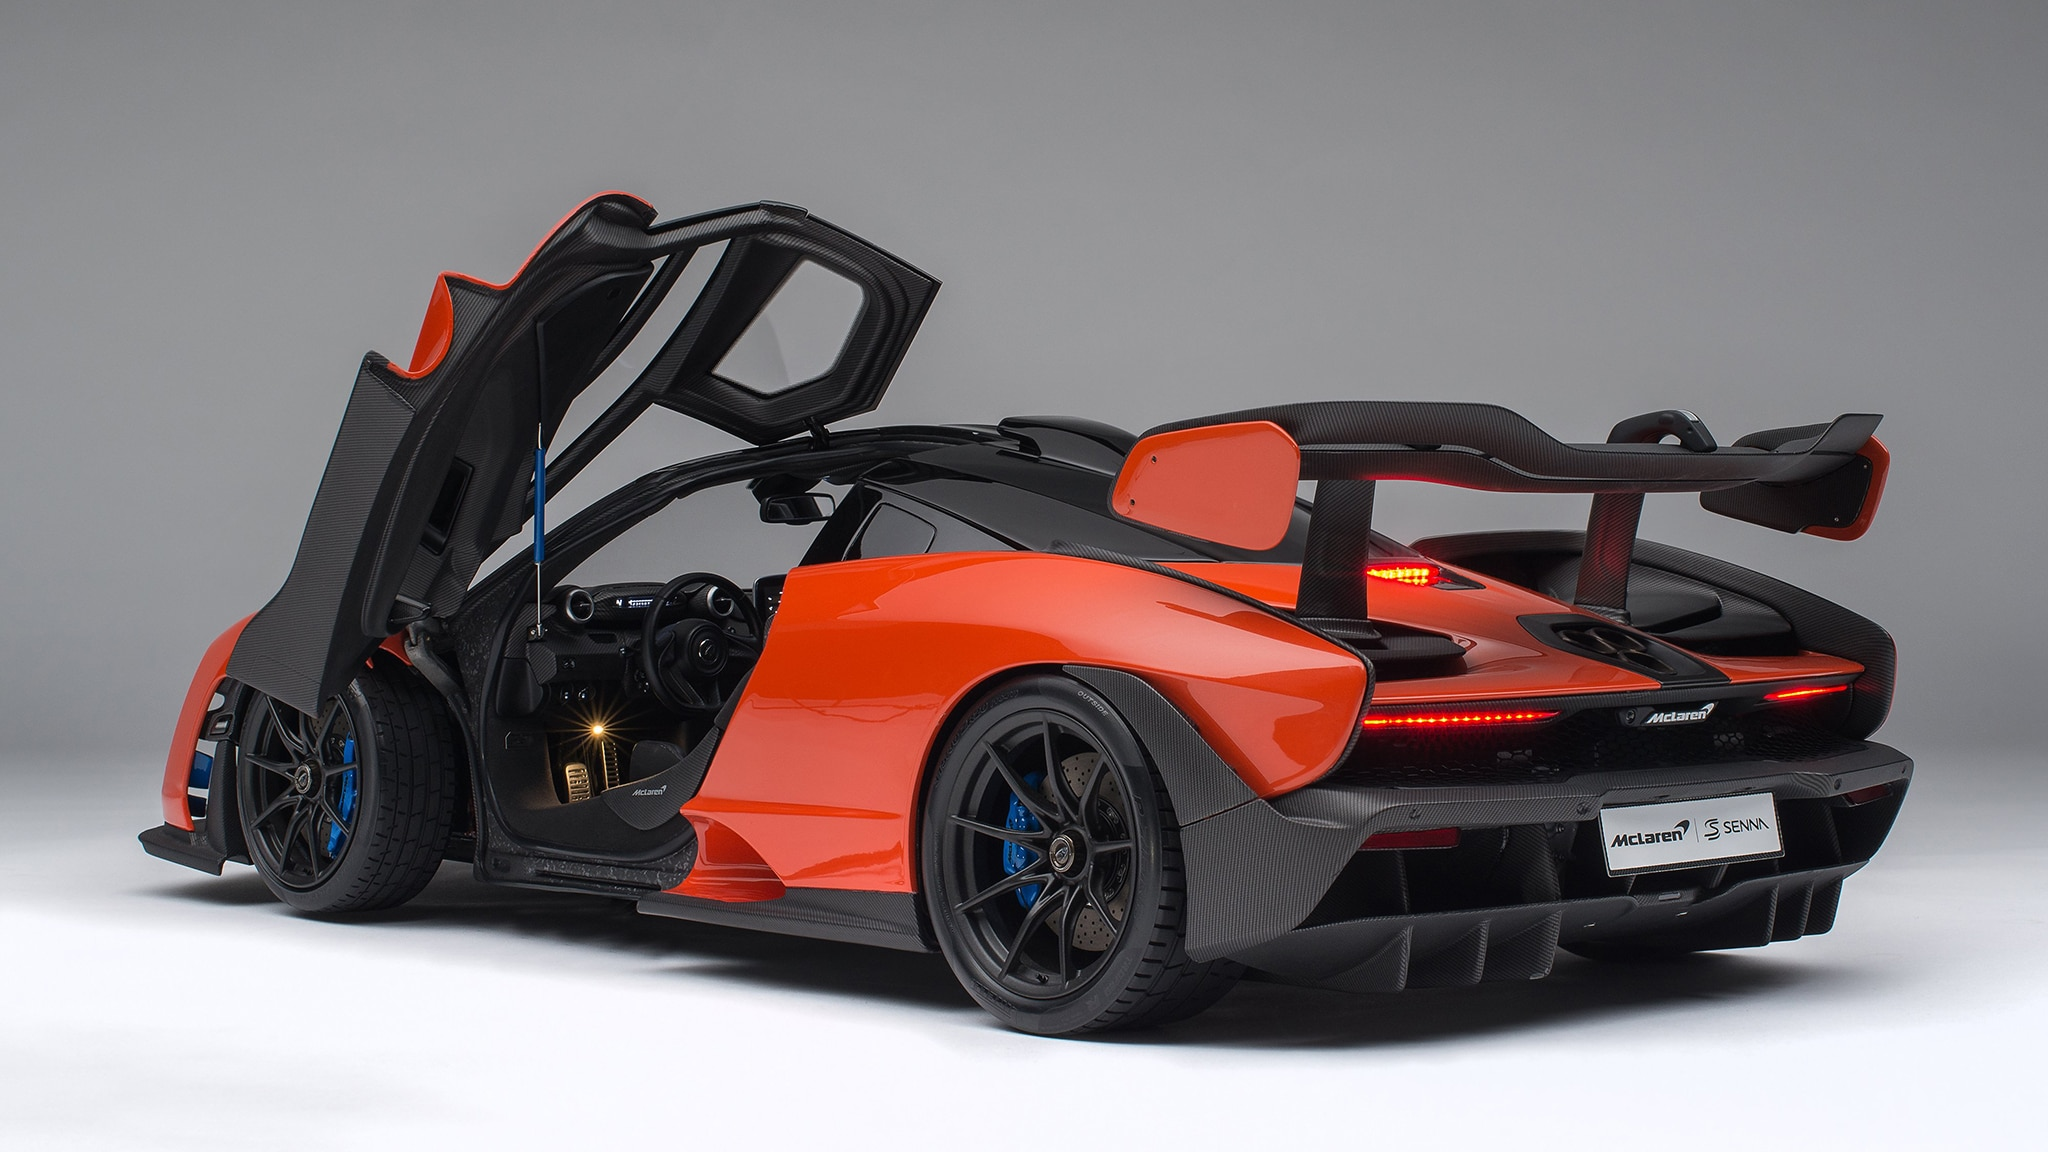 miniature mclaren senna sells for  13k  has remote lights and doors